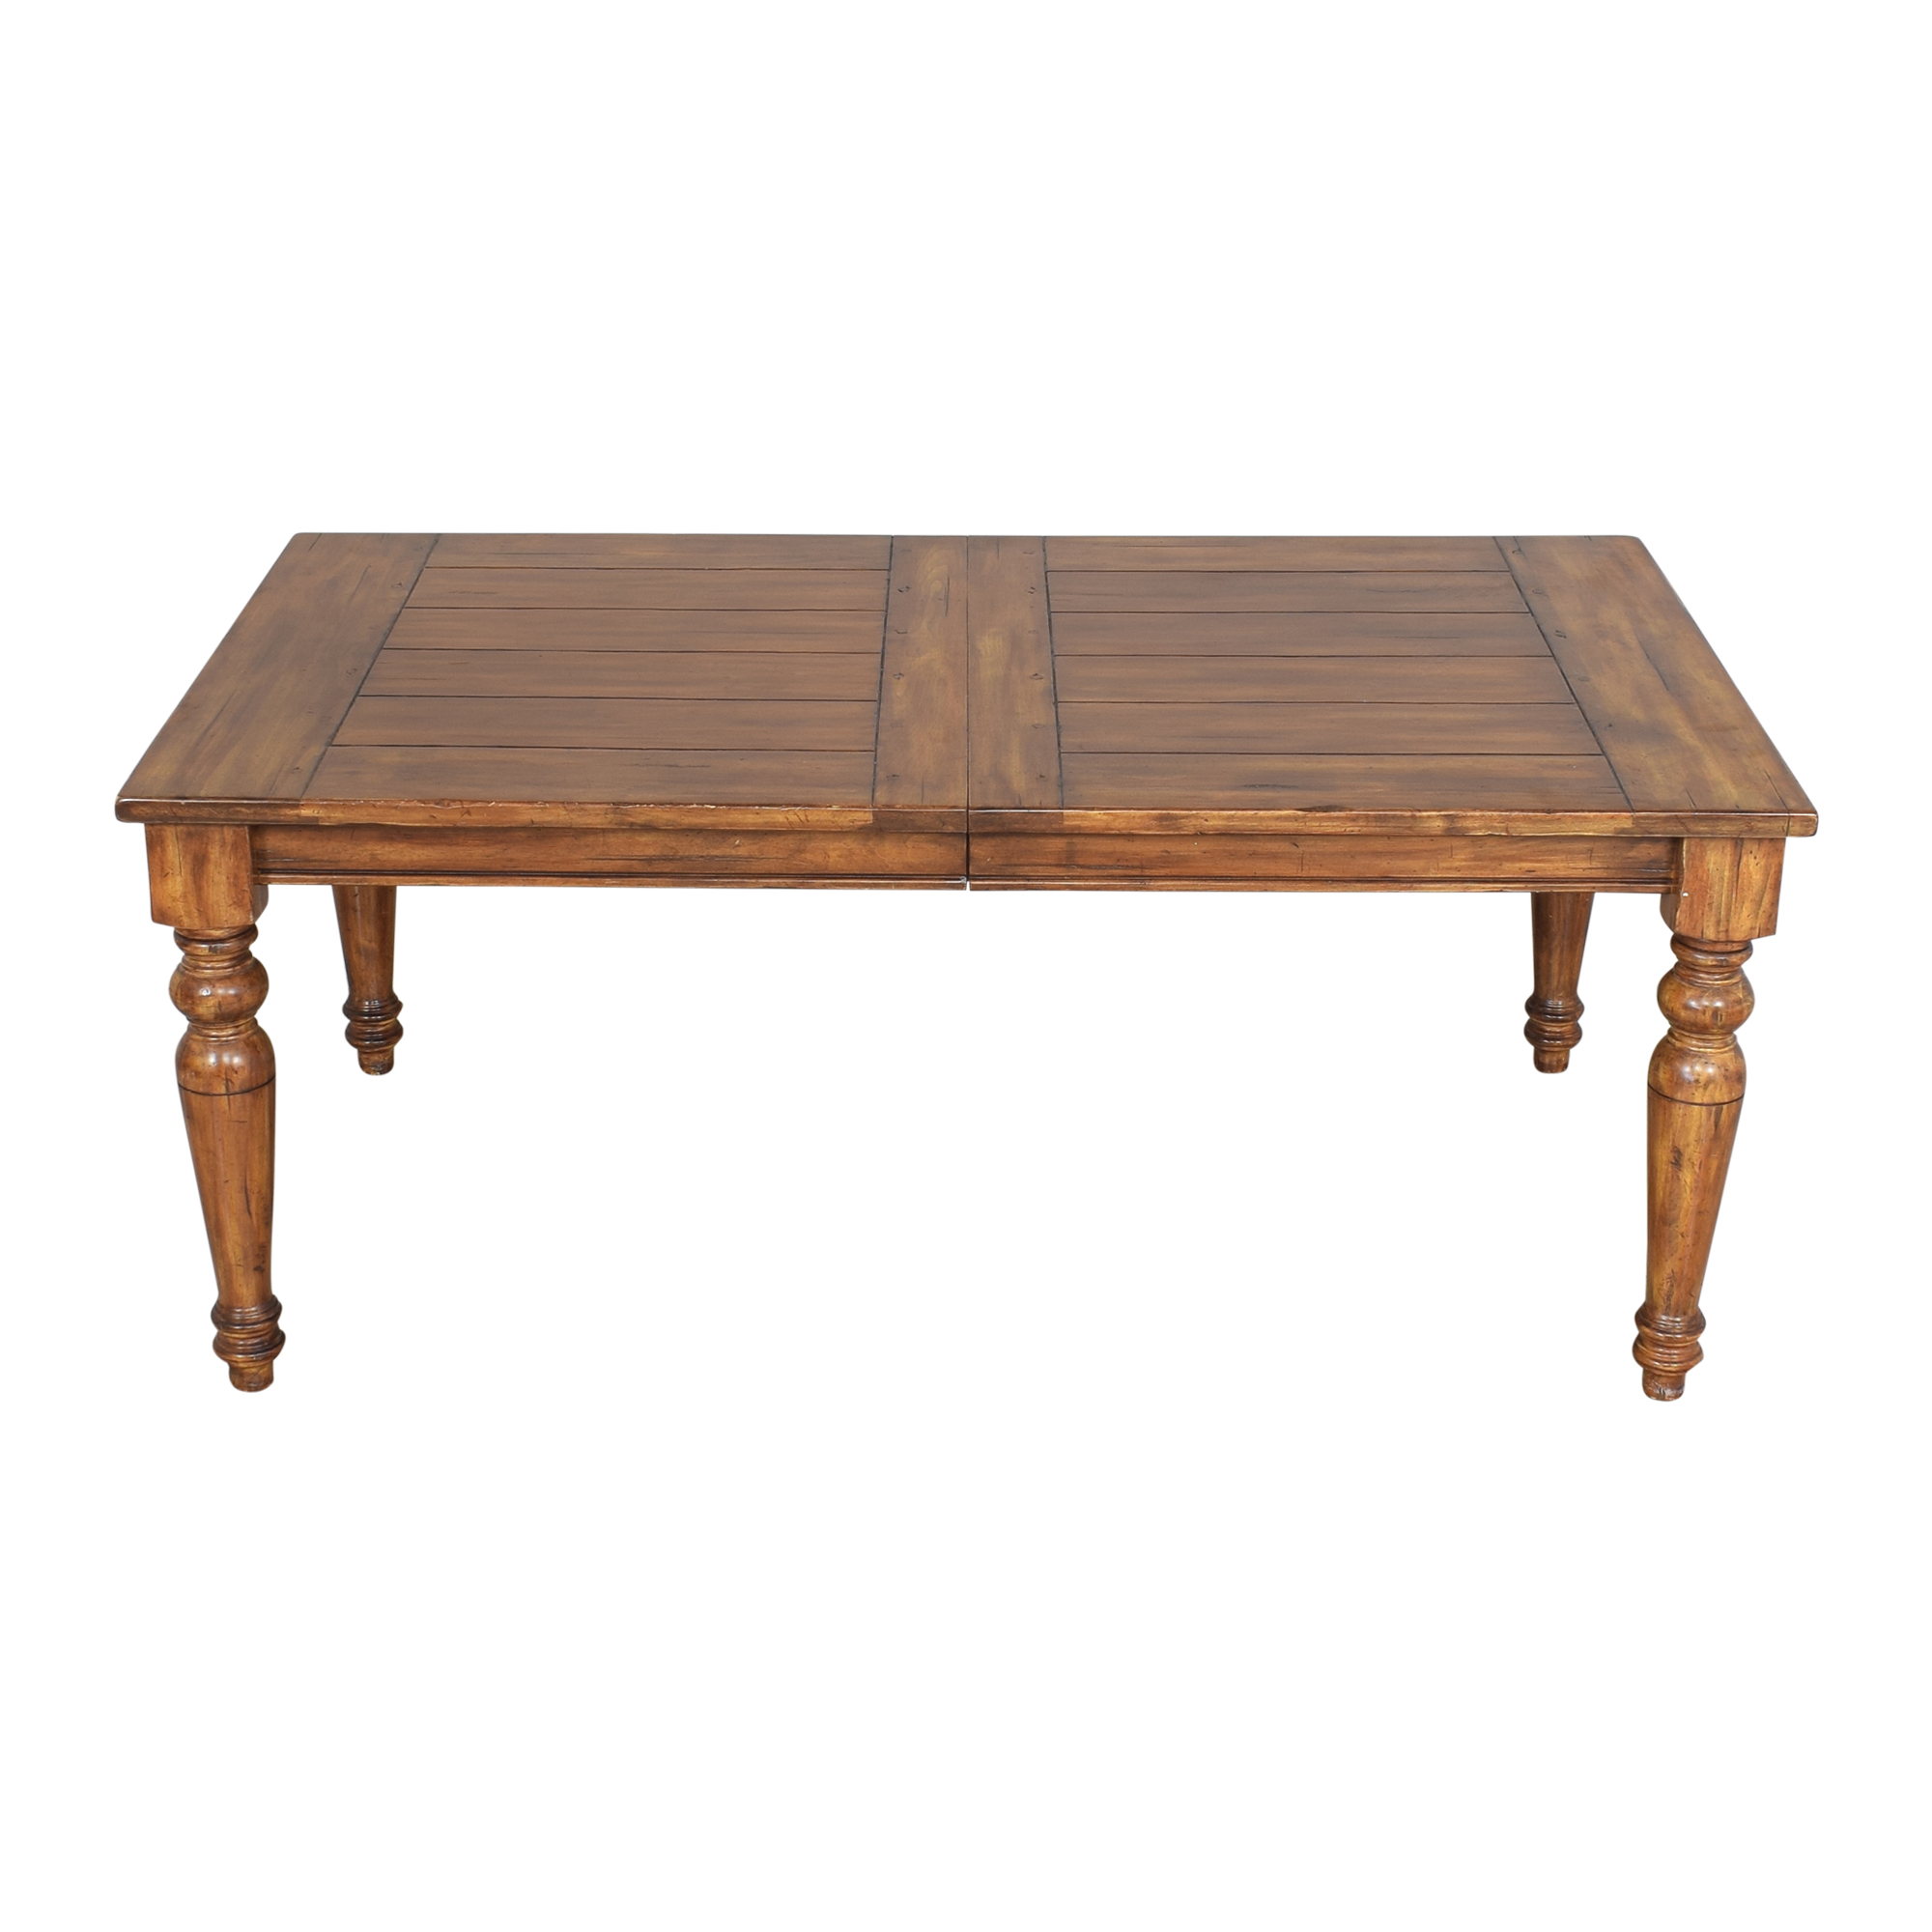 Rustic Extendable Dining Table ct